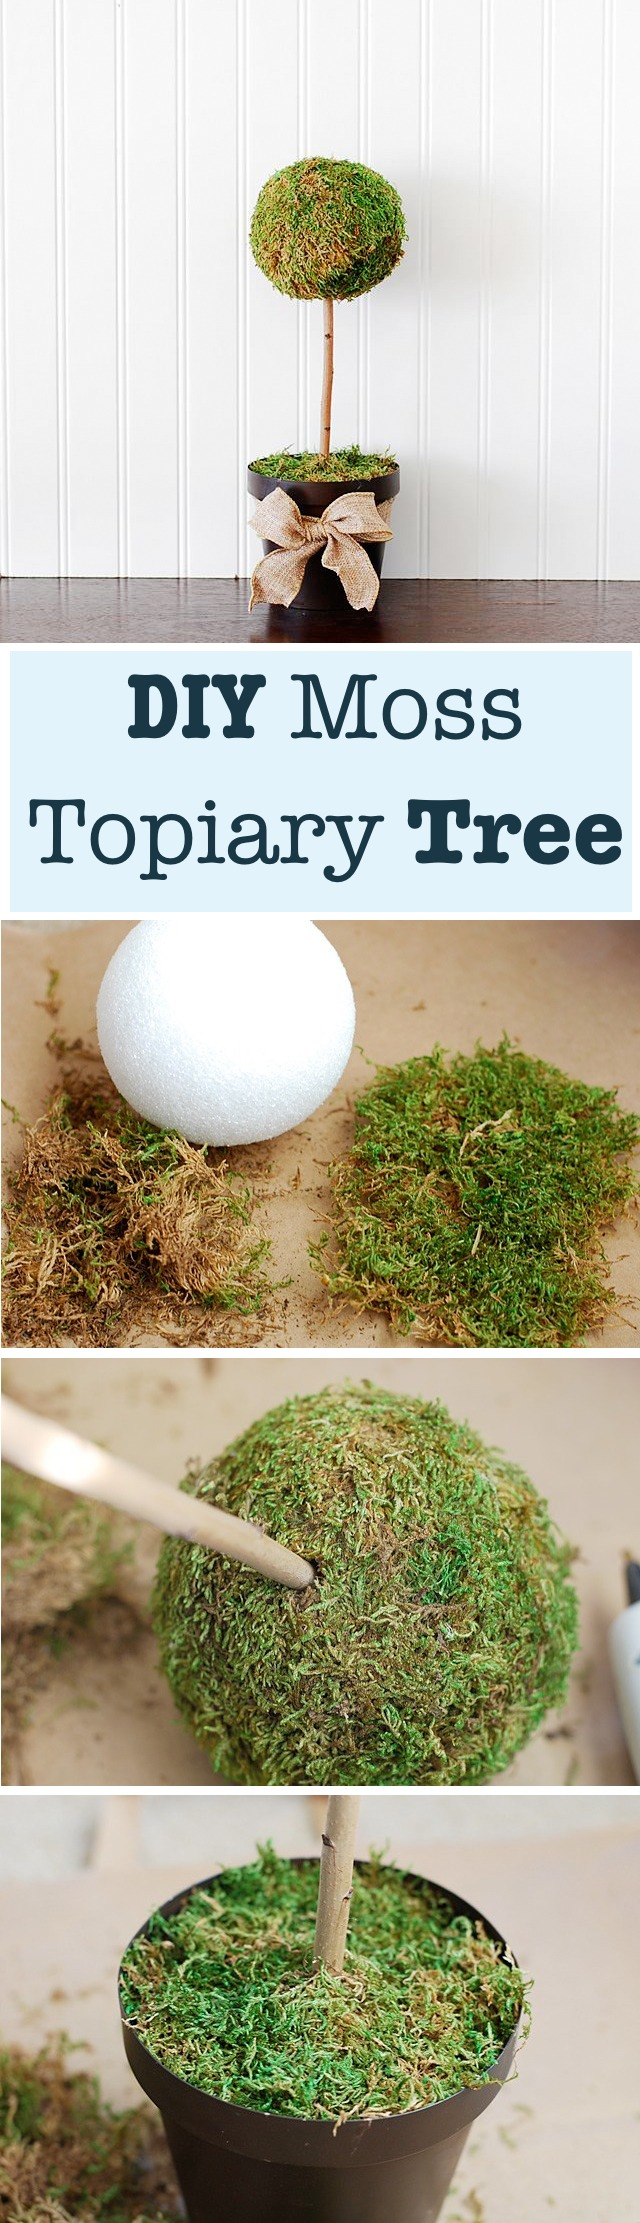 DIY Moss  Topiary Tree